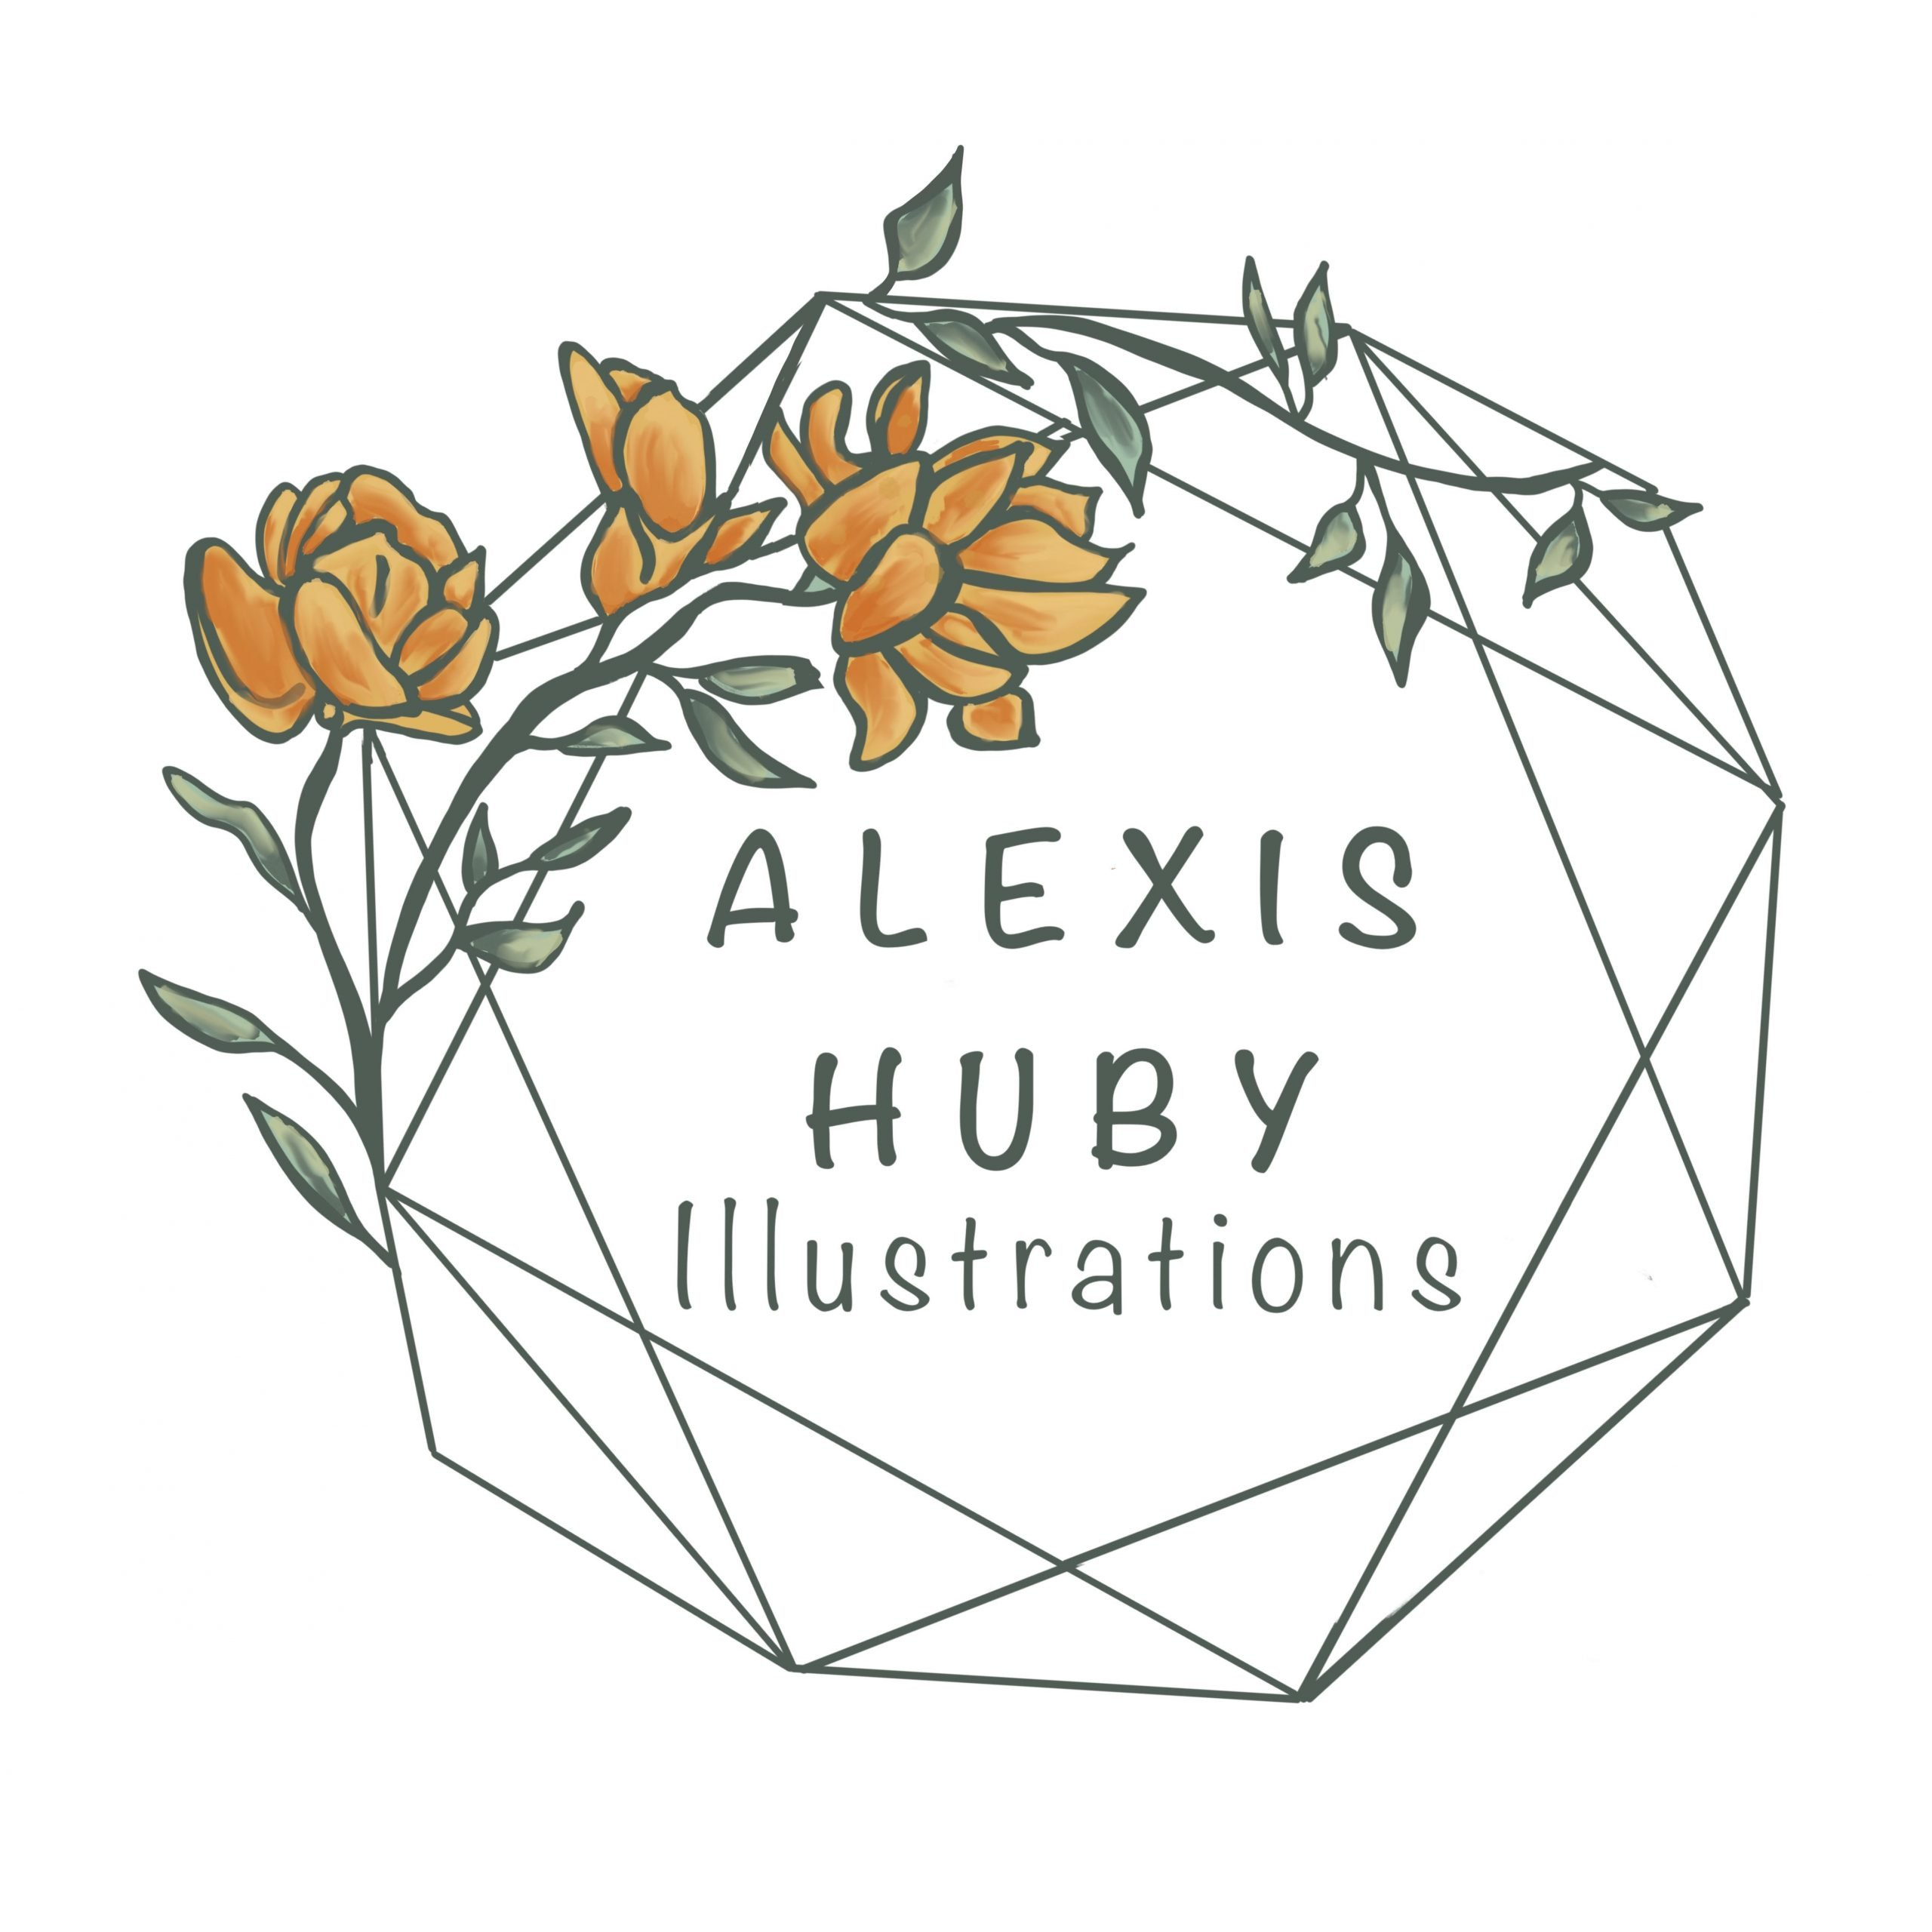 Alexis Hubby Illustrations